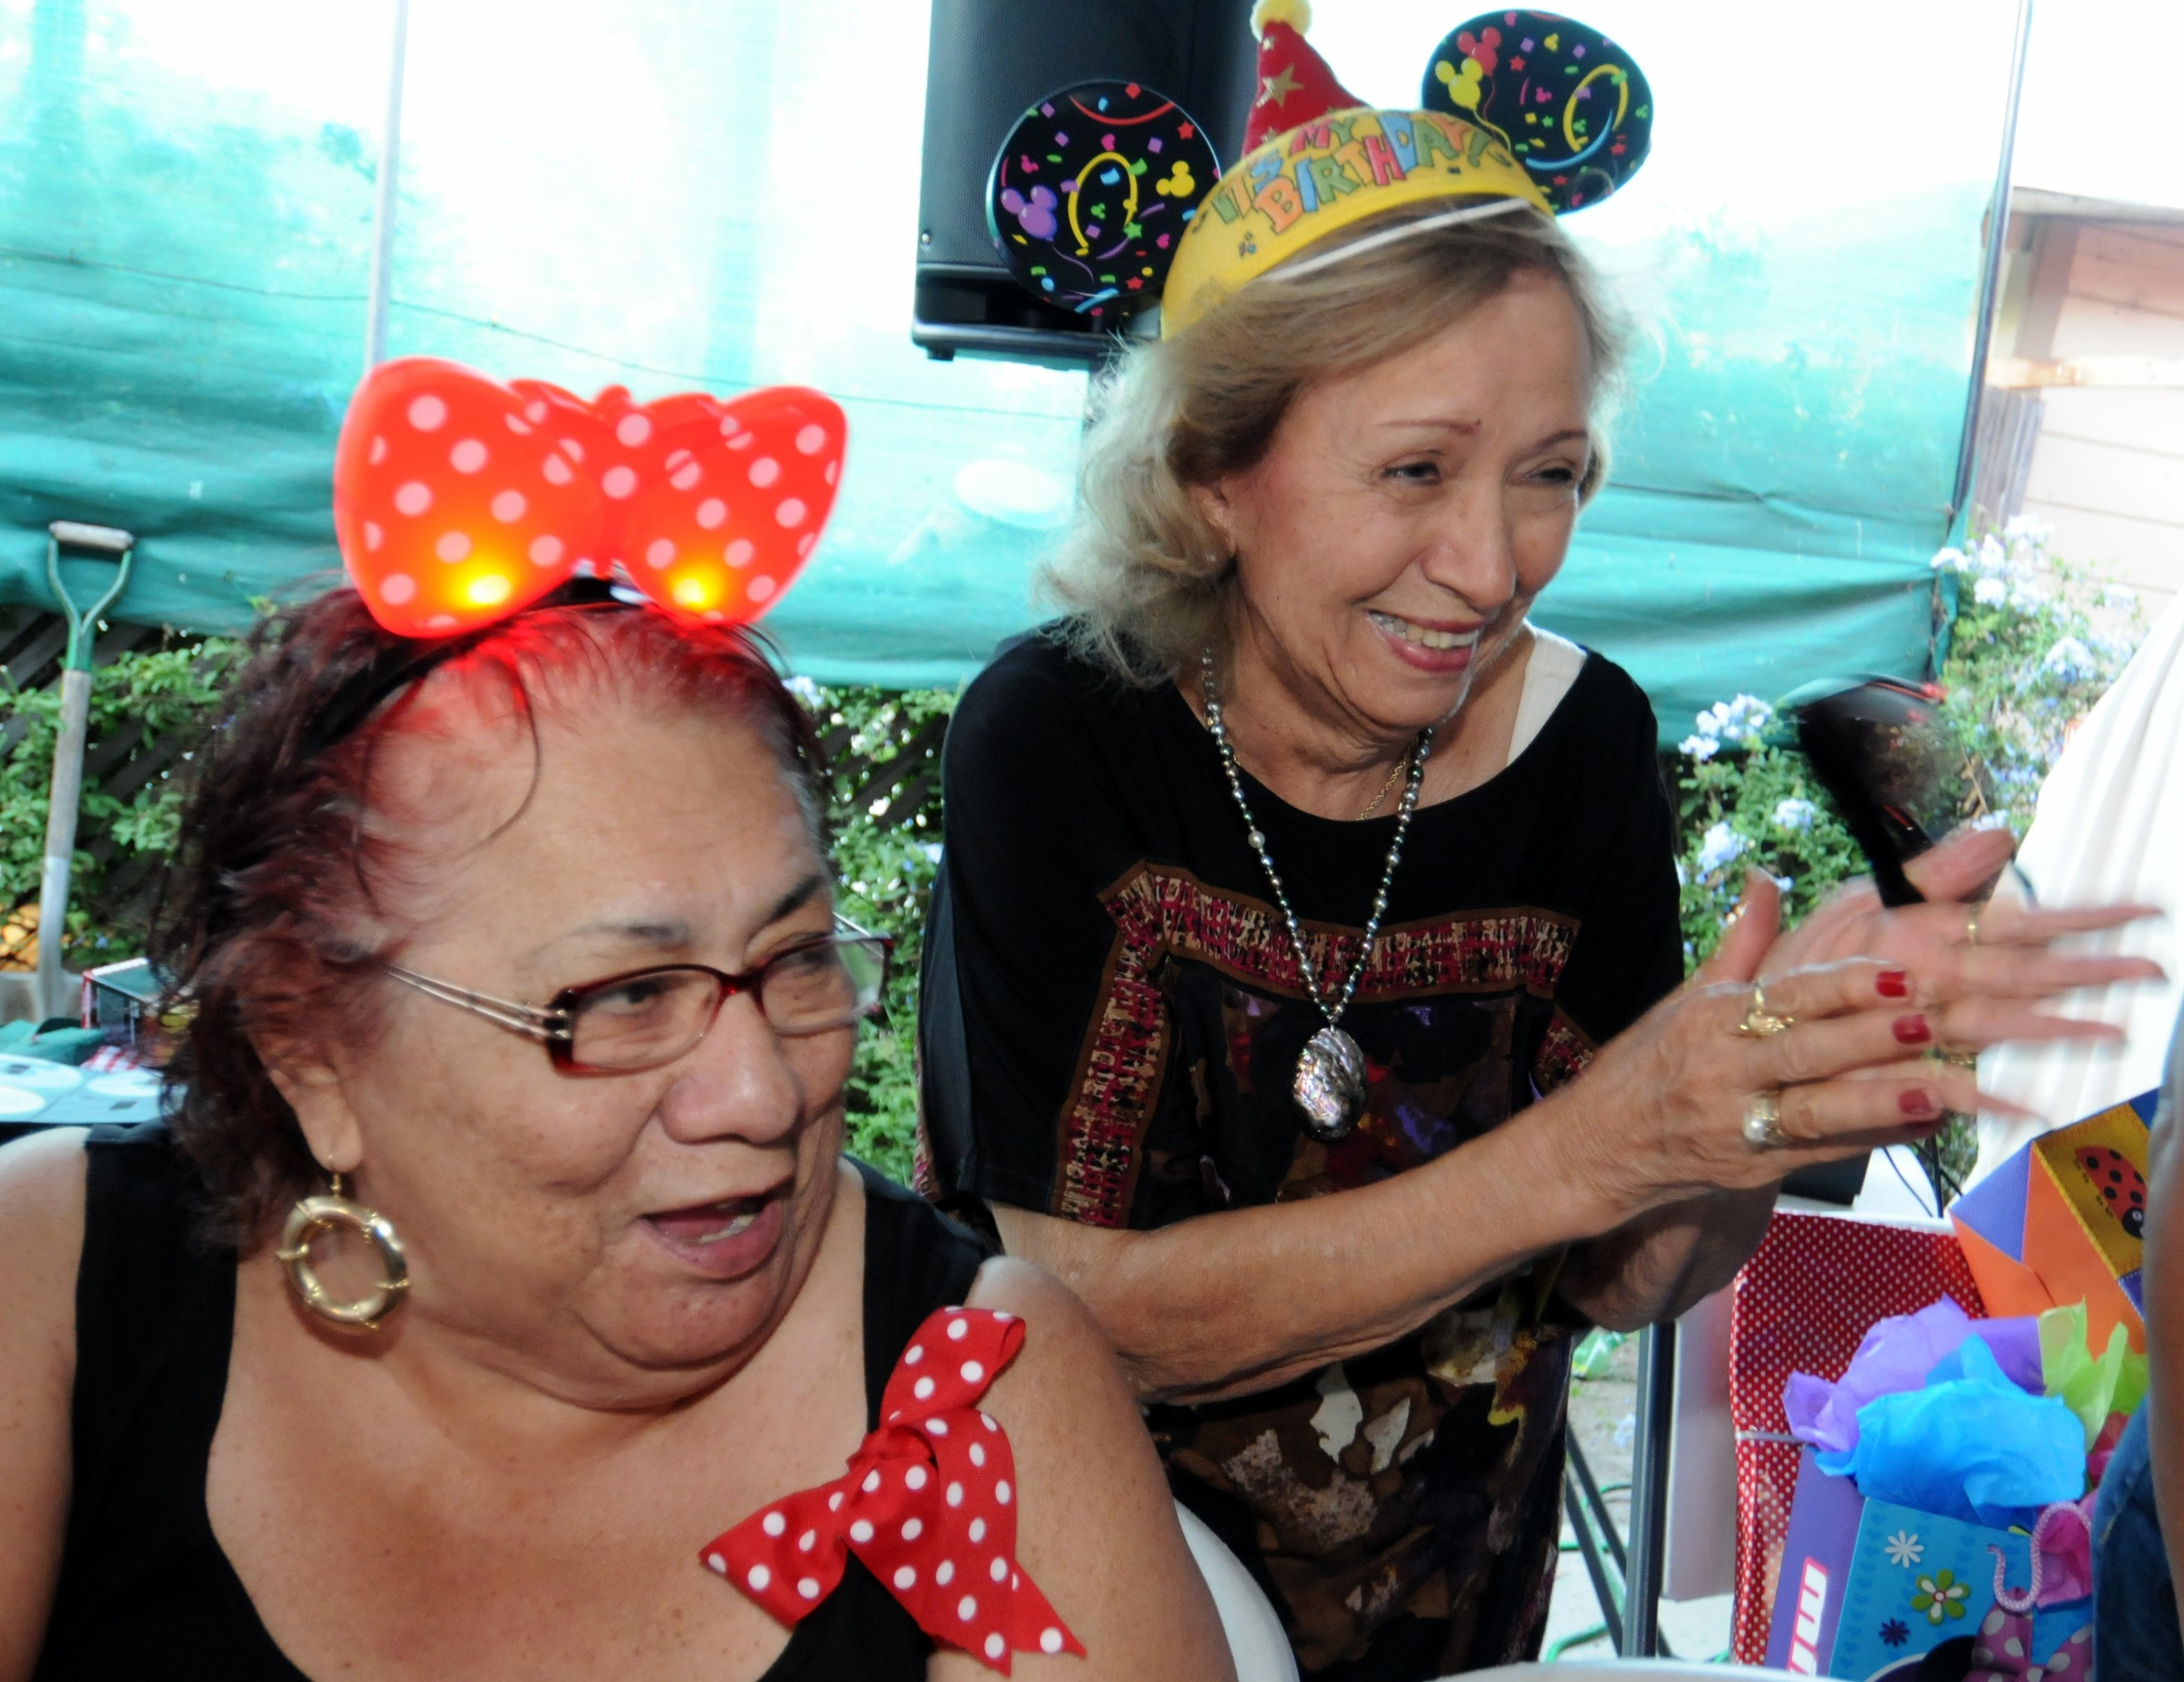 Singing at Xiomara's 2nd birthday party on 11 August 2013